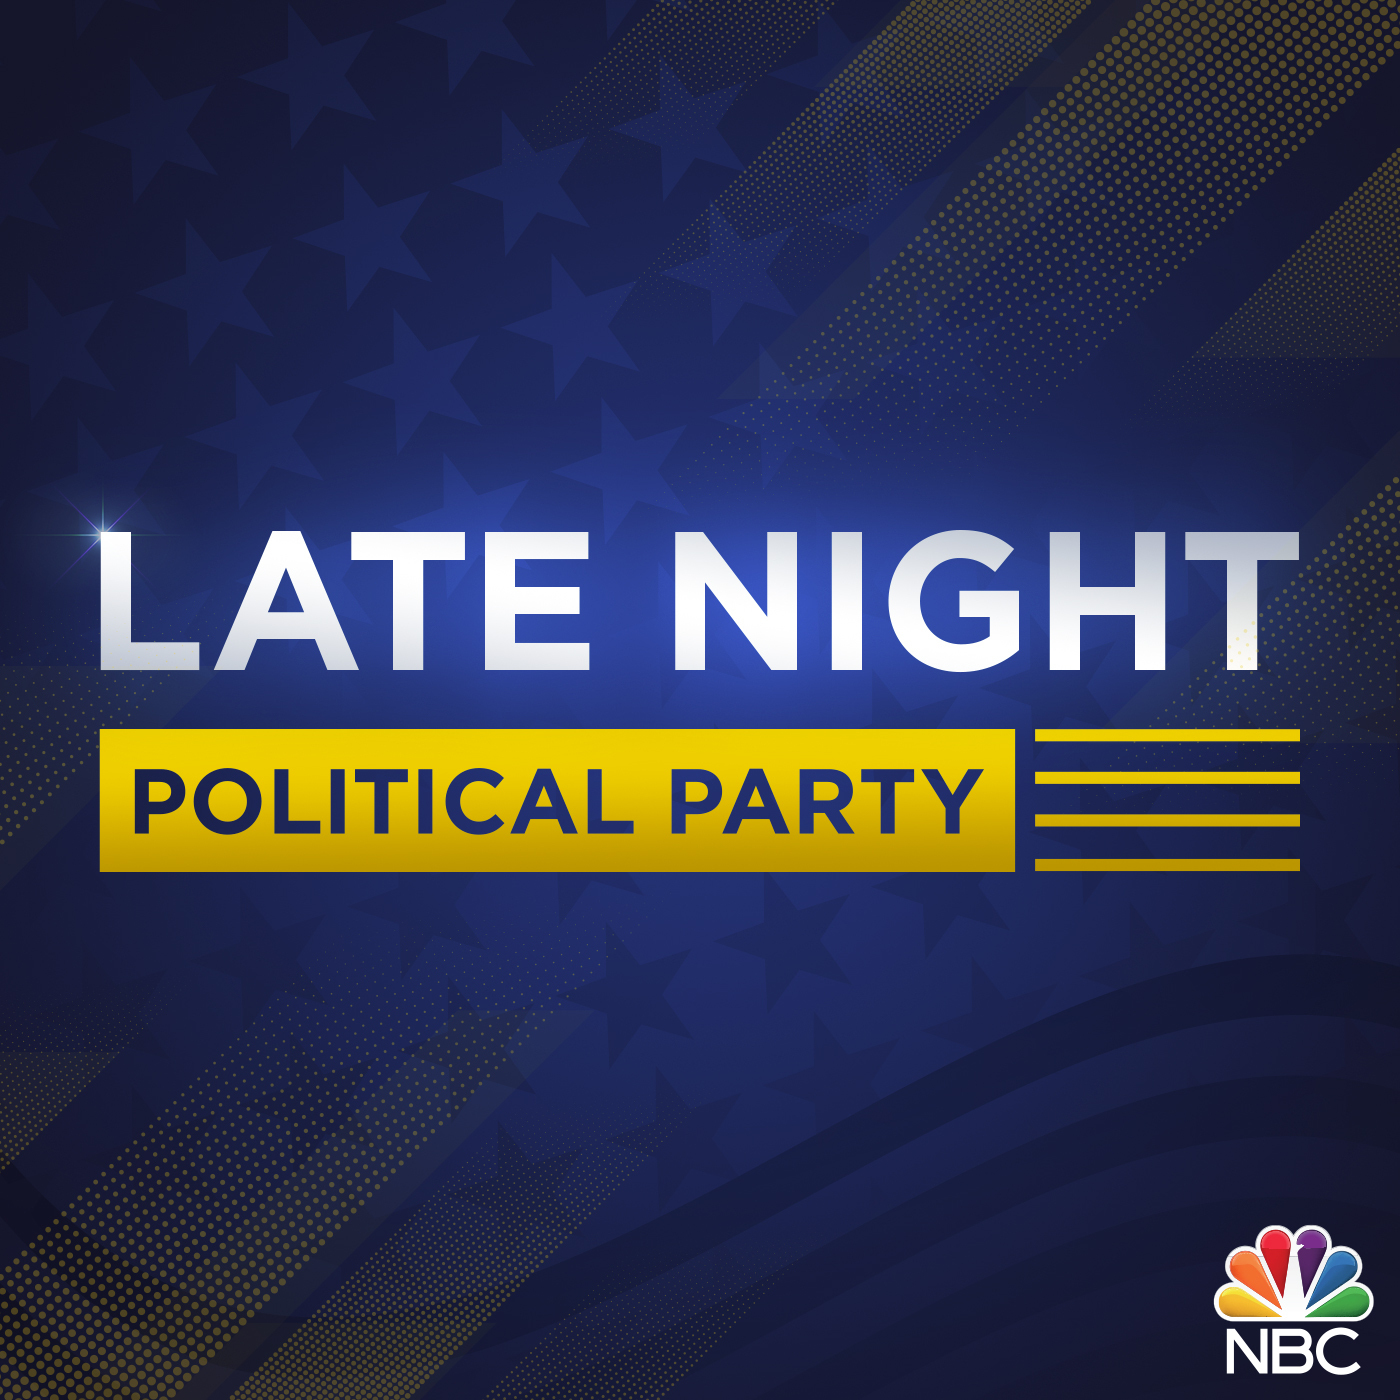 Late Night Political Party, Part 2